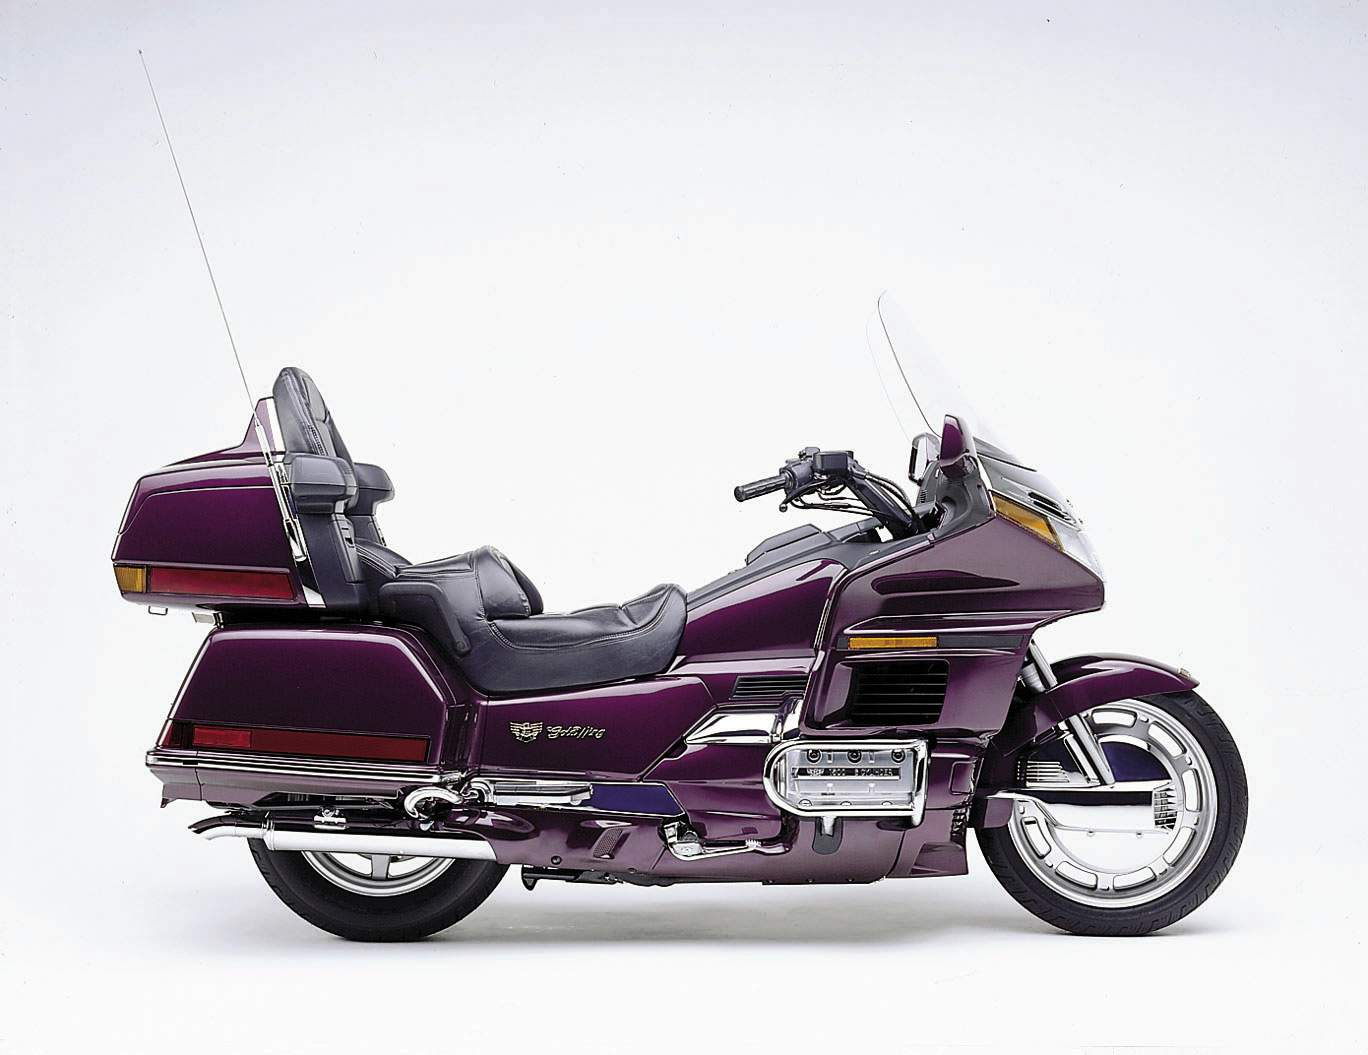 honda glx 1500 gold wing specs 1994 1995 1996 1997. Black Bedroom Furniture Sets. Home Design Ideas